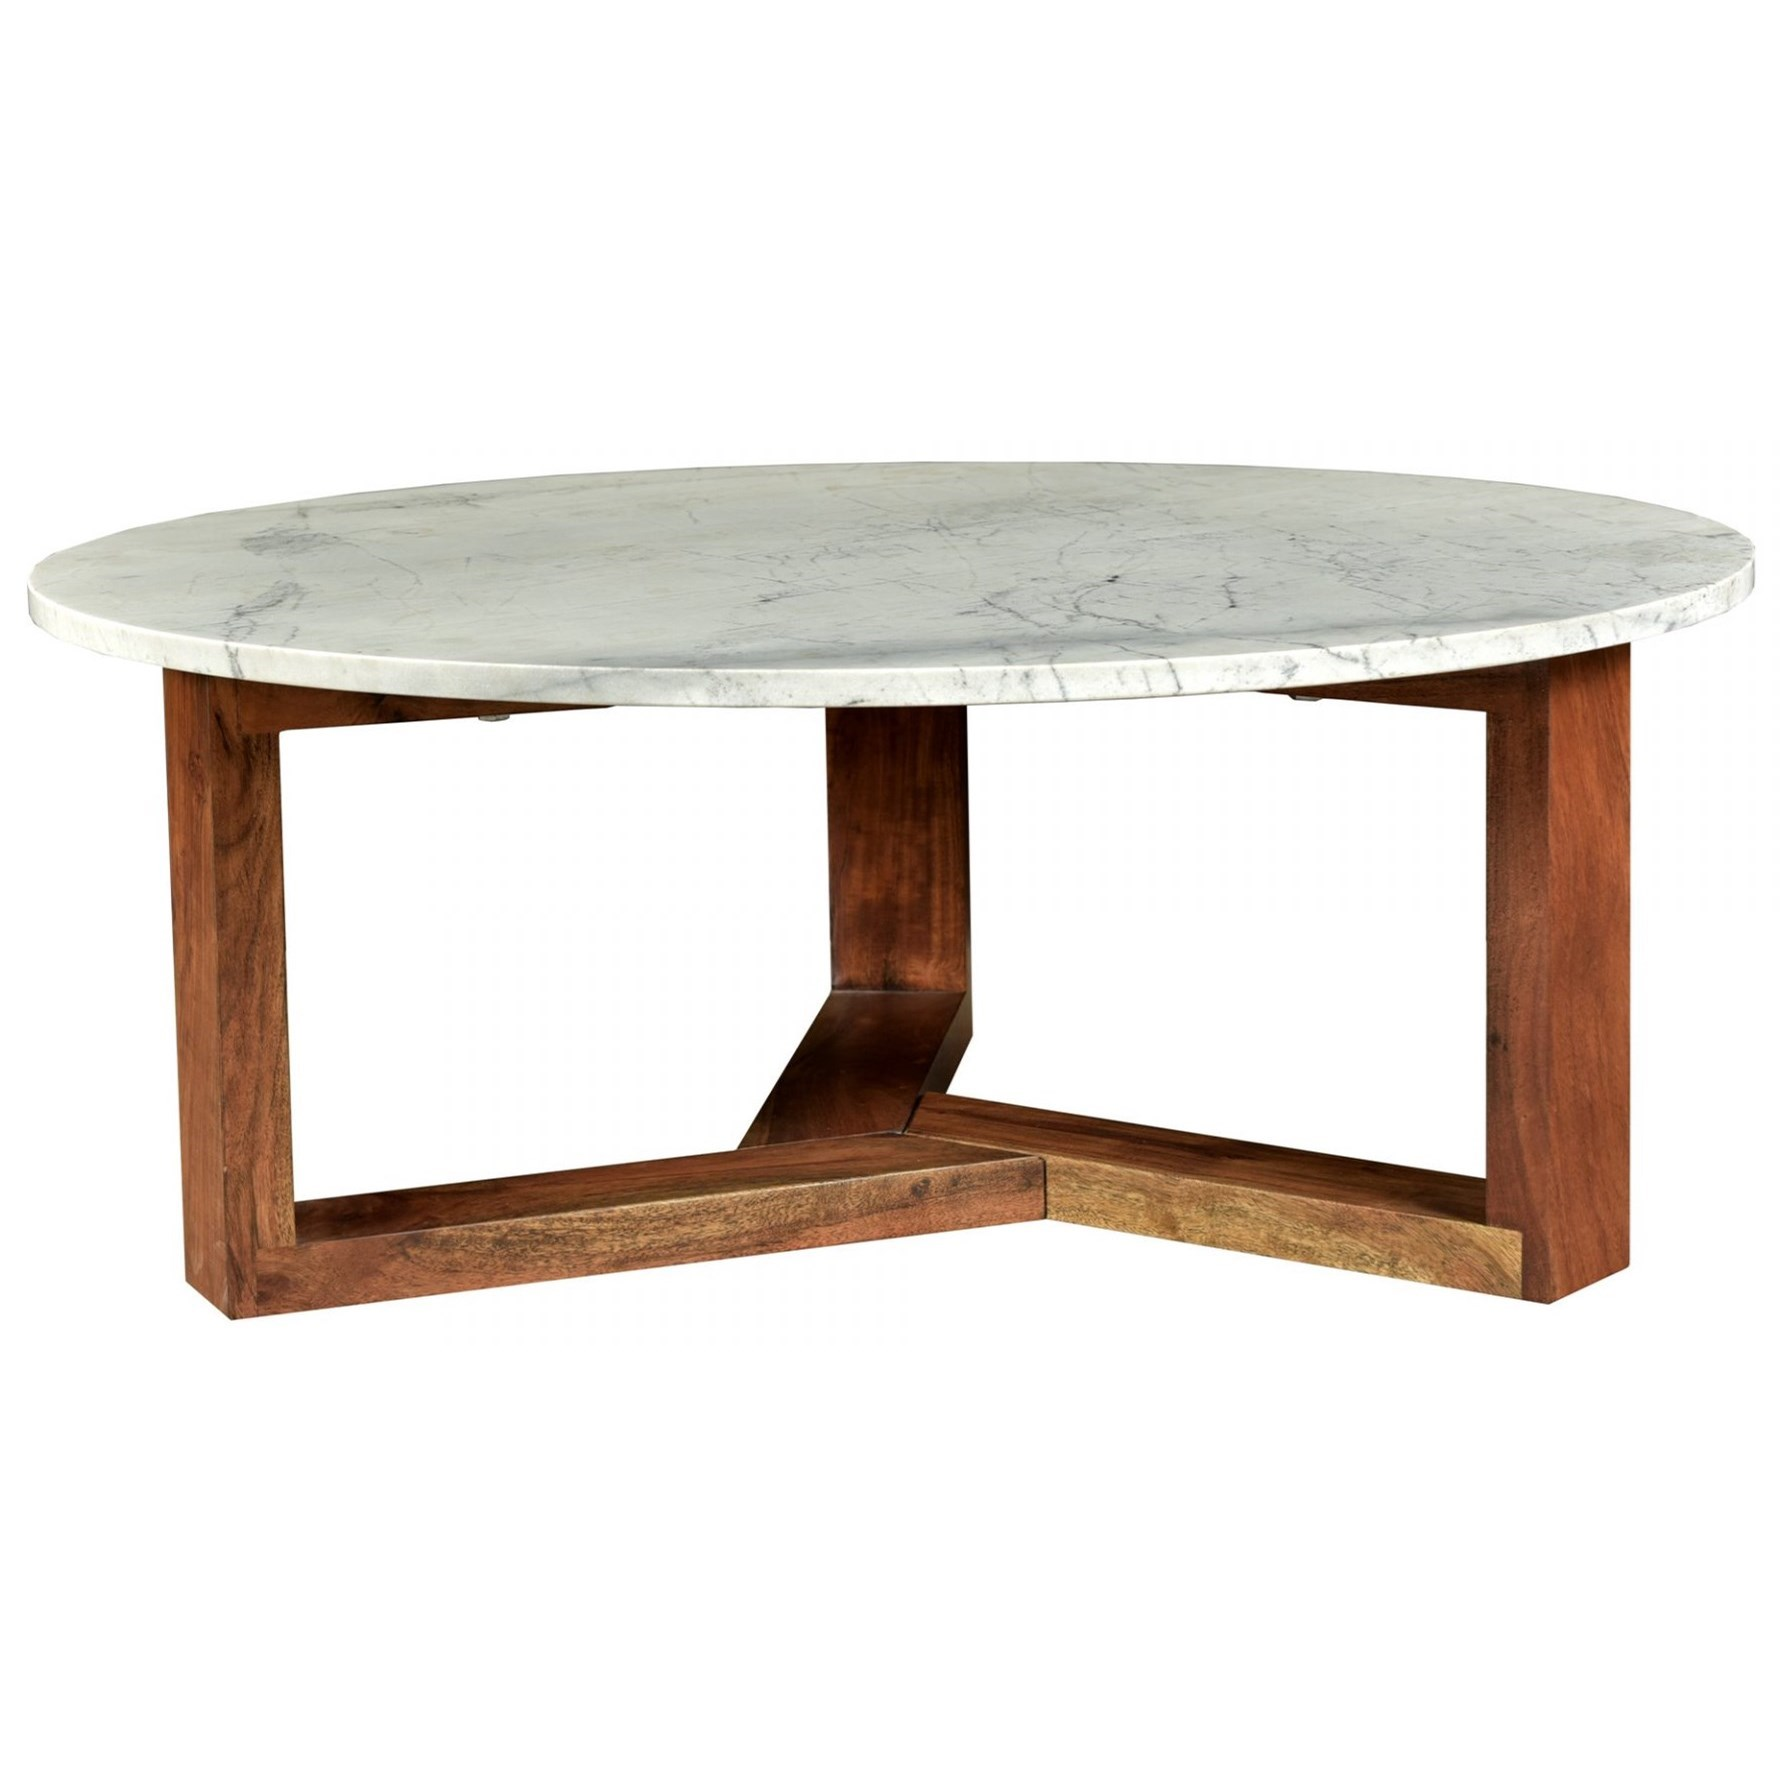 Jinxx Coffee Table by Moe's Home Collection at Stoney Creek Furniture